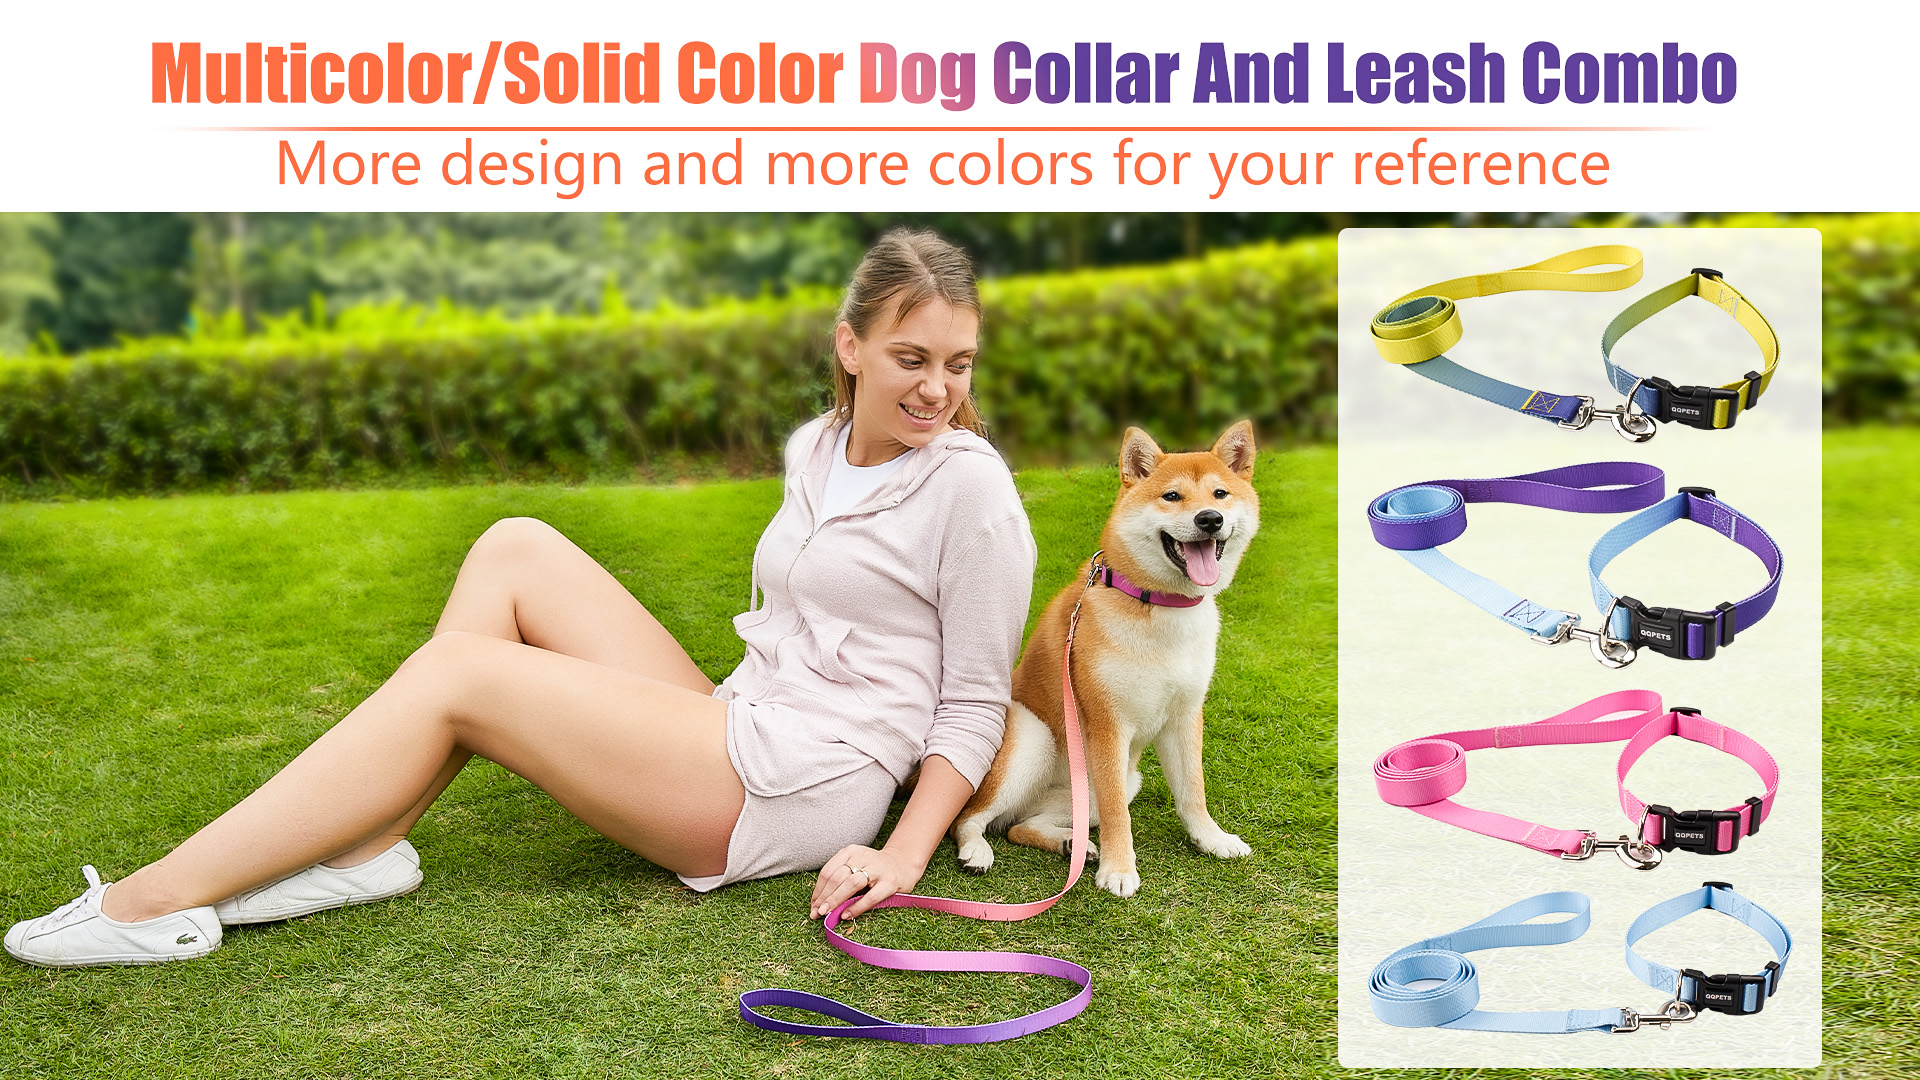 Fashion Customized Polyester Multicolor/Solid Color Dog Collar And Leash Set